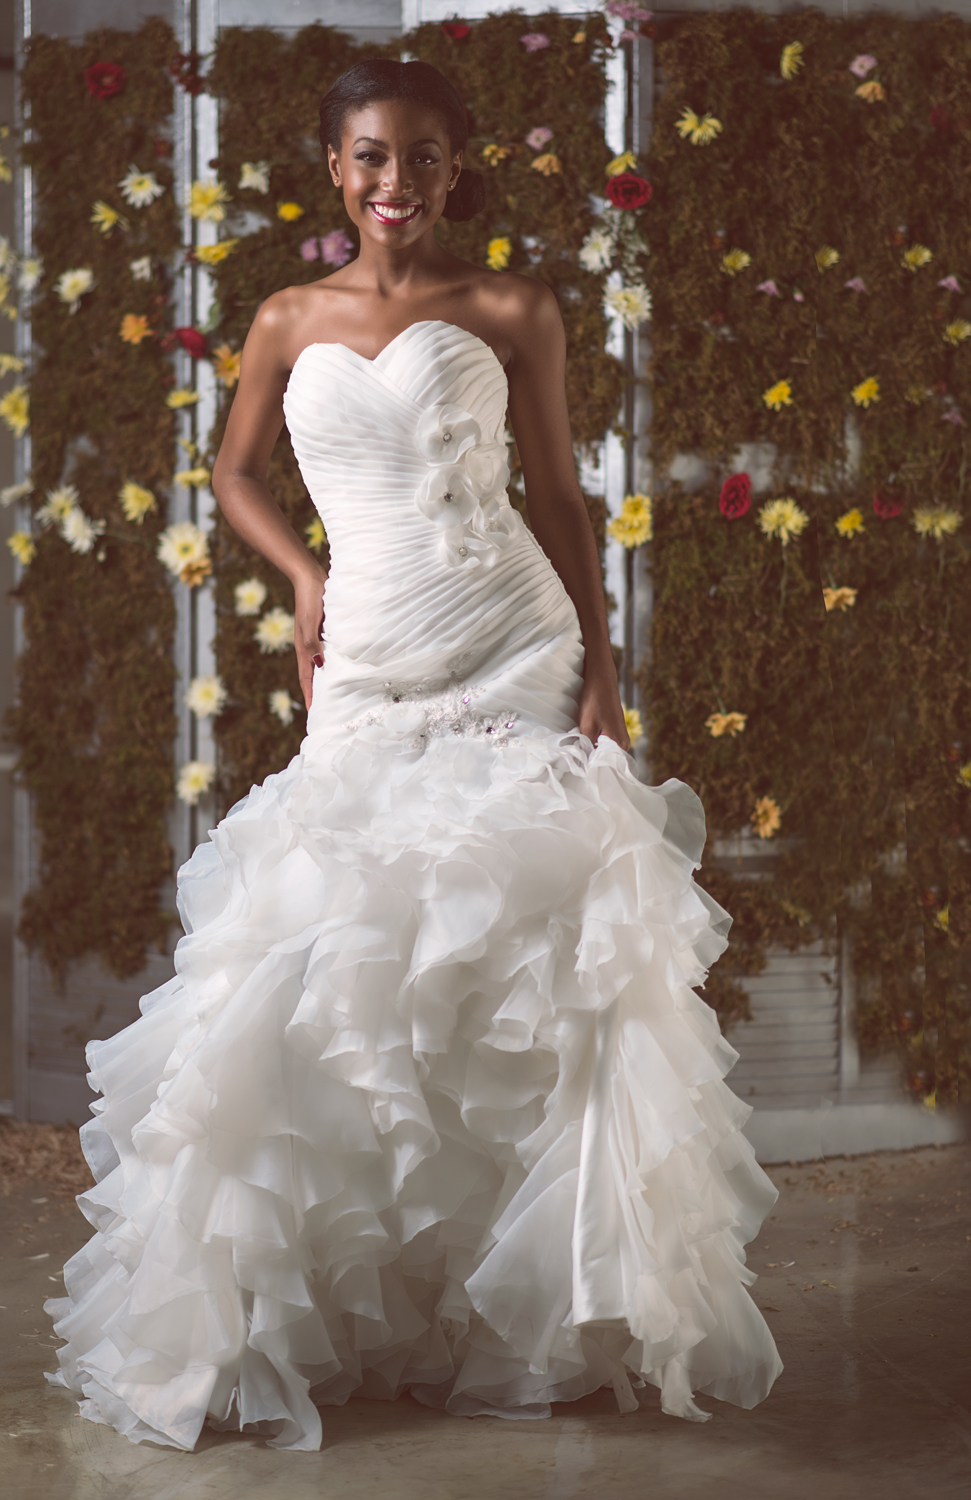 MeJeanne Couture Custom Wedding Gown Collection